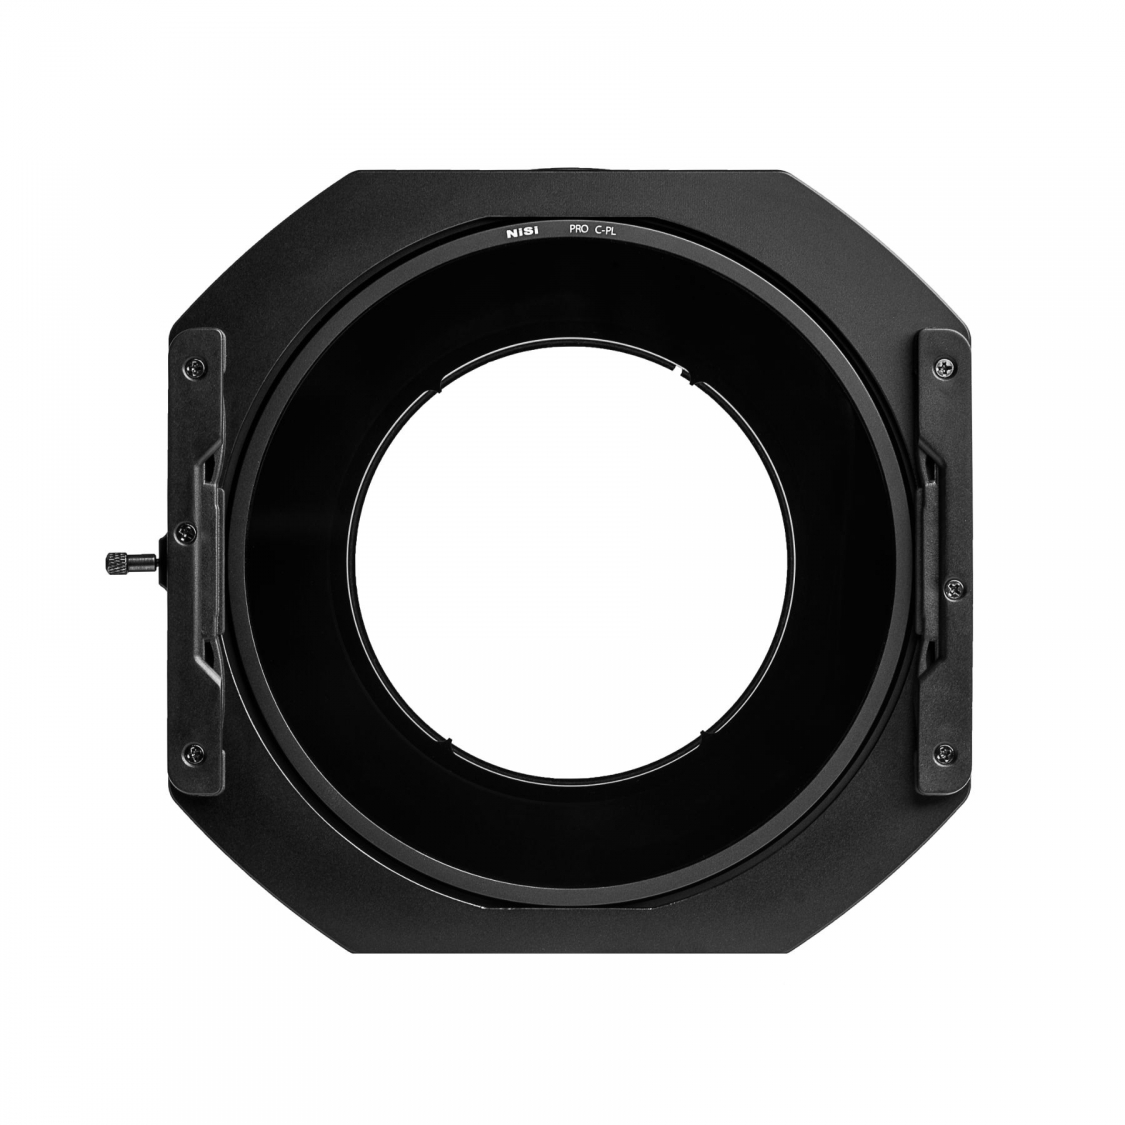 NiSi S5 Kit 150mm Filter Holder with CPL for Sigma 14-24mm f/2.8 DG Art Series (Canon and Nikon Mount)